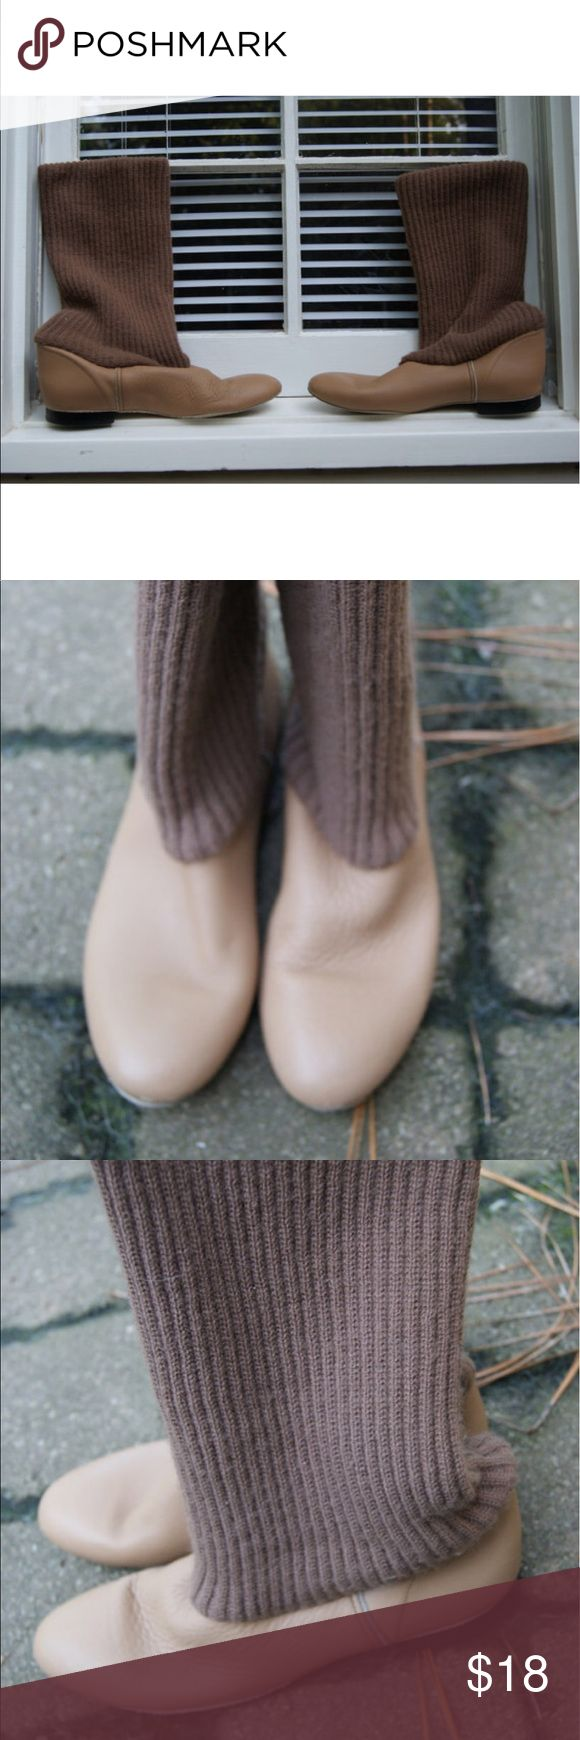 Vintage Slouchy Sweater Boots or Chic Slippers 7 These are soft bottom boots with suede soles. I am not sure if they a re slippers or regular boots. I would wear them everywhere. Camel colored boot with a slightly darker knit top. Low Synthetic heel. These could be cuffed to be ankle boots.    Label Jarman  Size 7  Boot height 24 invches  Heel height 1/2 inche  Ball of foot 3.5 inches      Very Good Vintage Confition- a tiny but of interior shedding Urban Outfitters Shoes Slippers